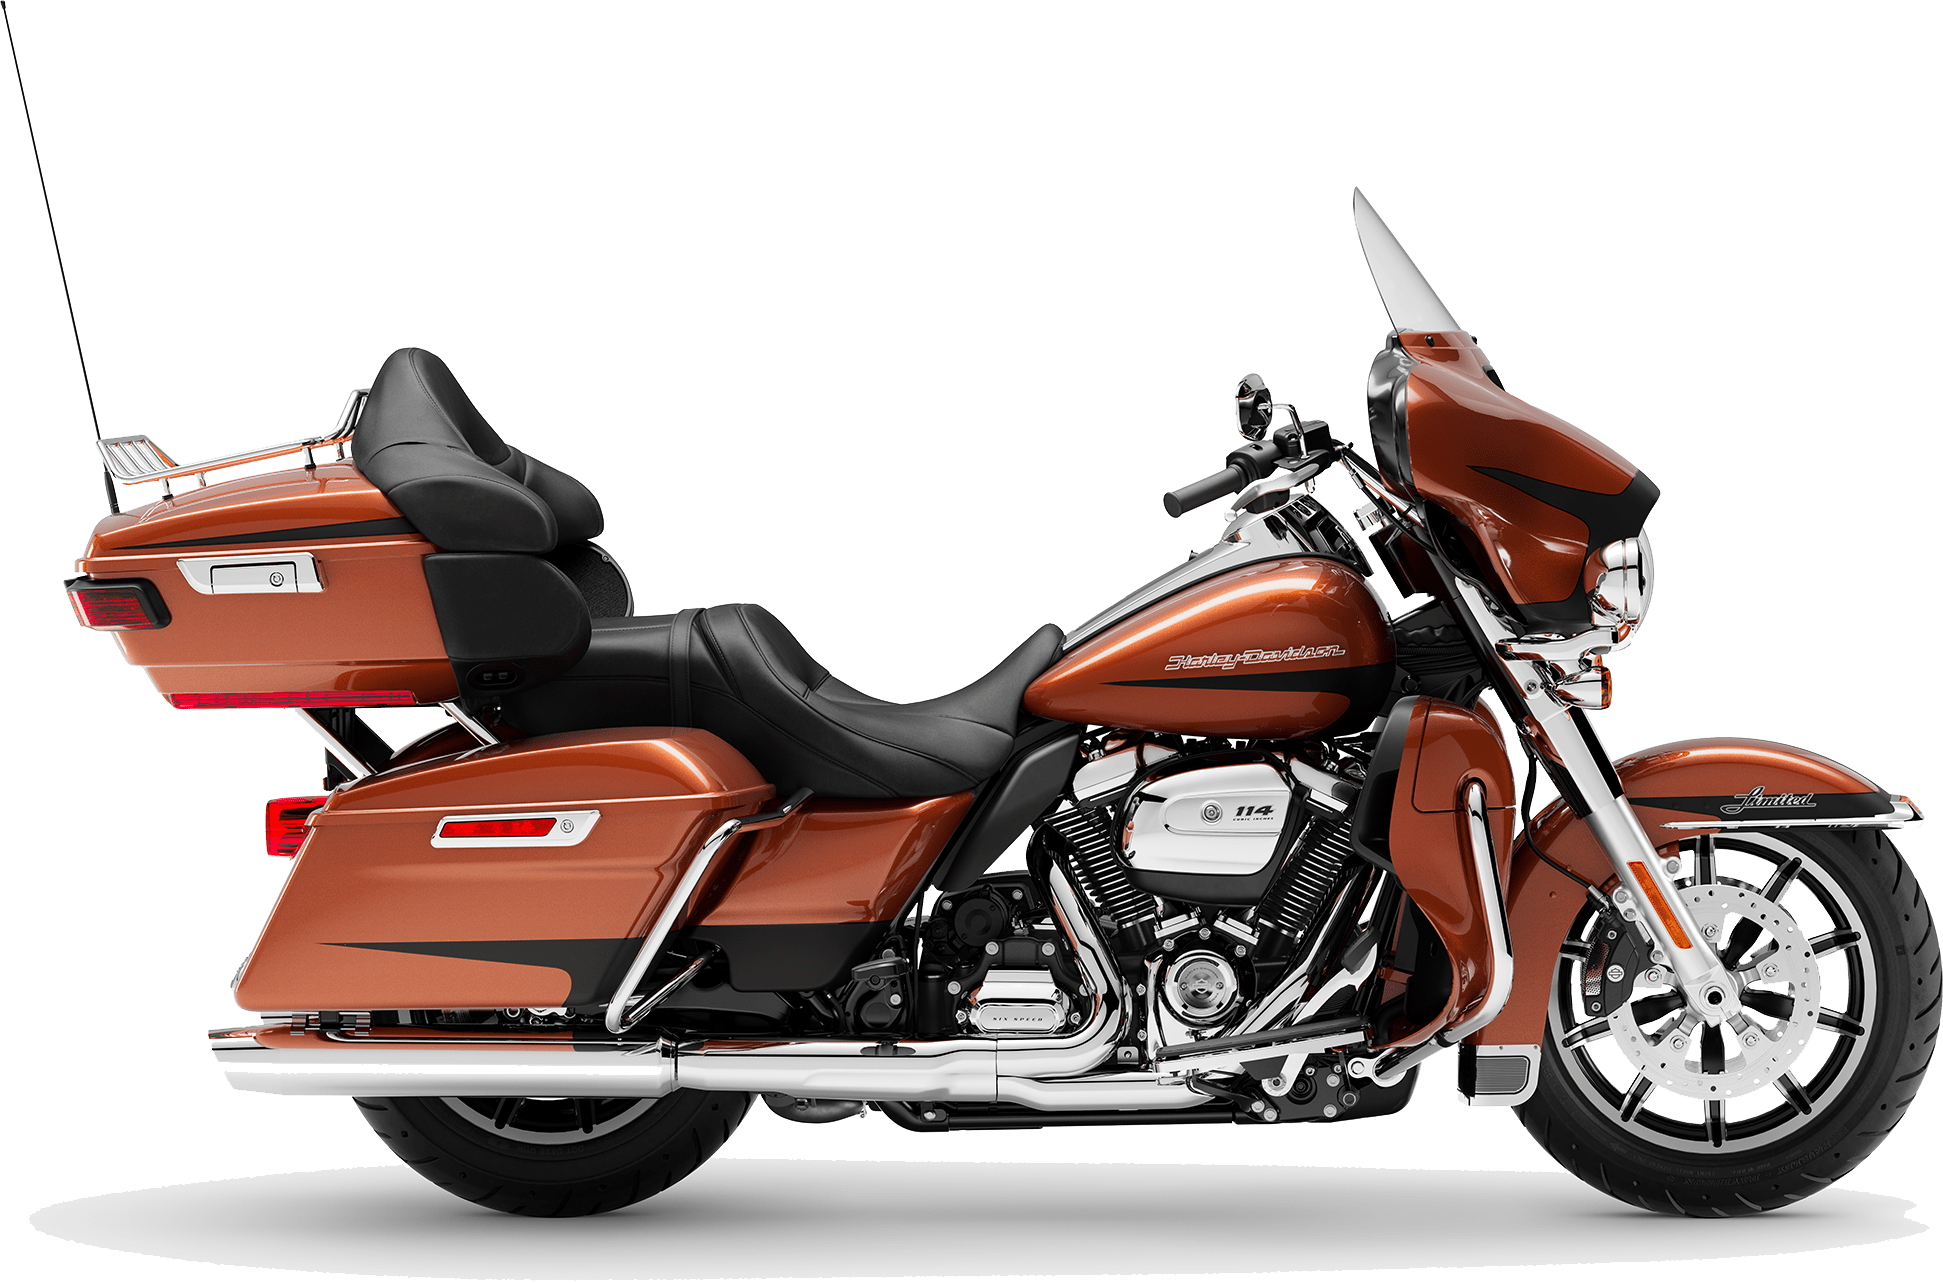 2019 Harley-Davidson H-D Touring Ultra Limited Low Scorched Orange Black Denim